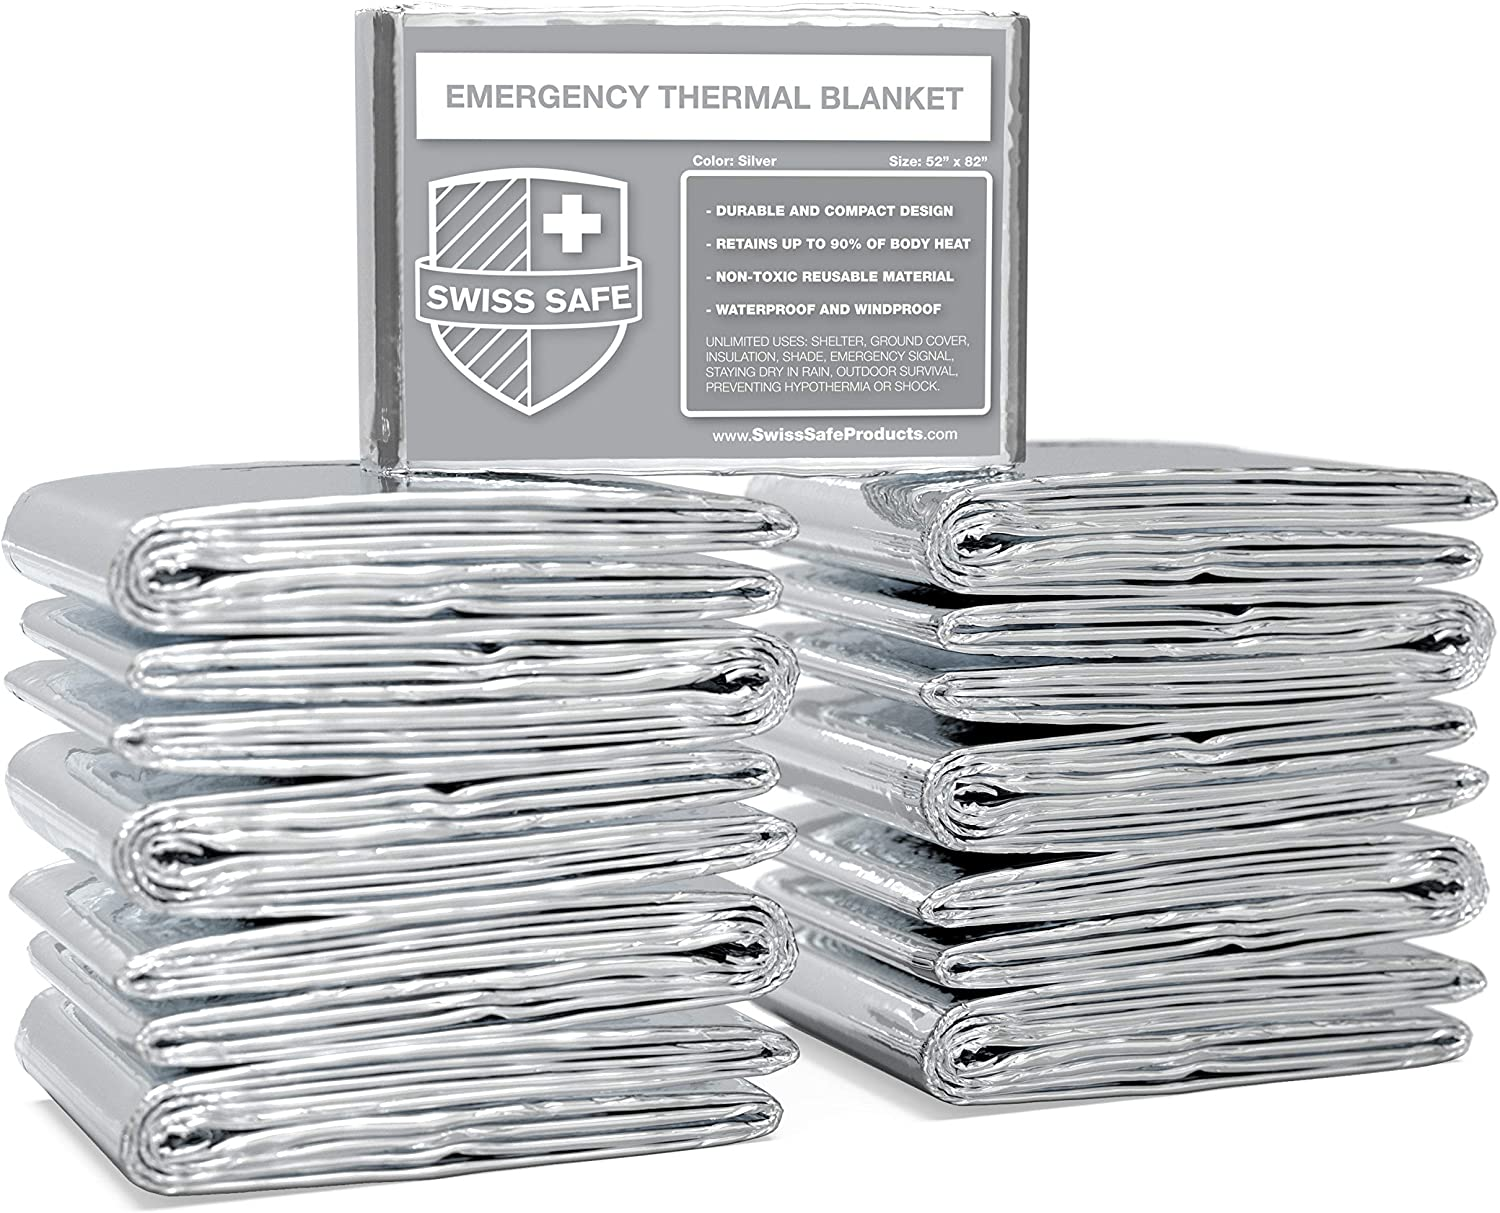 Swiss Safe Emergency Mylar Thermal Blankets (Bulk 10pk, 25pk) - Designed for NASA, Outdoors, Hiking, Survival, Marathons or First Aid (Silver Color)